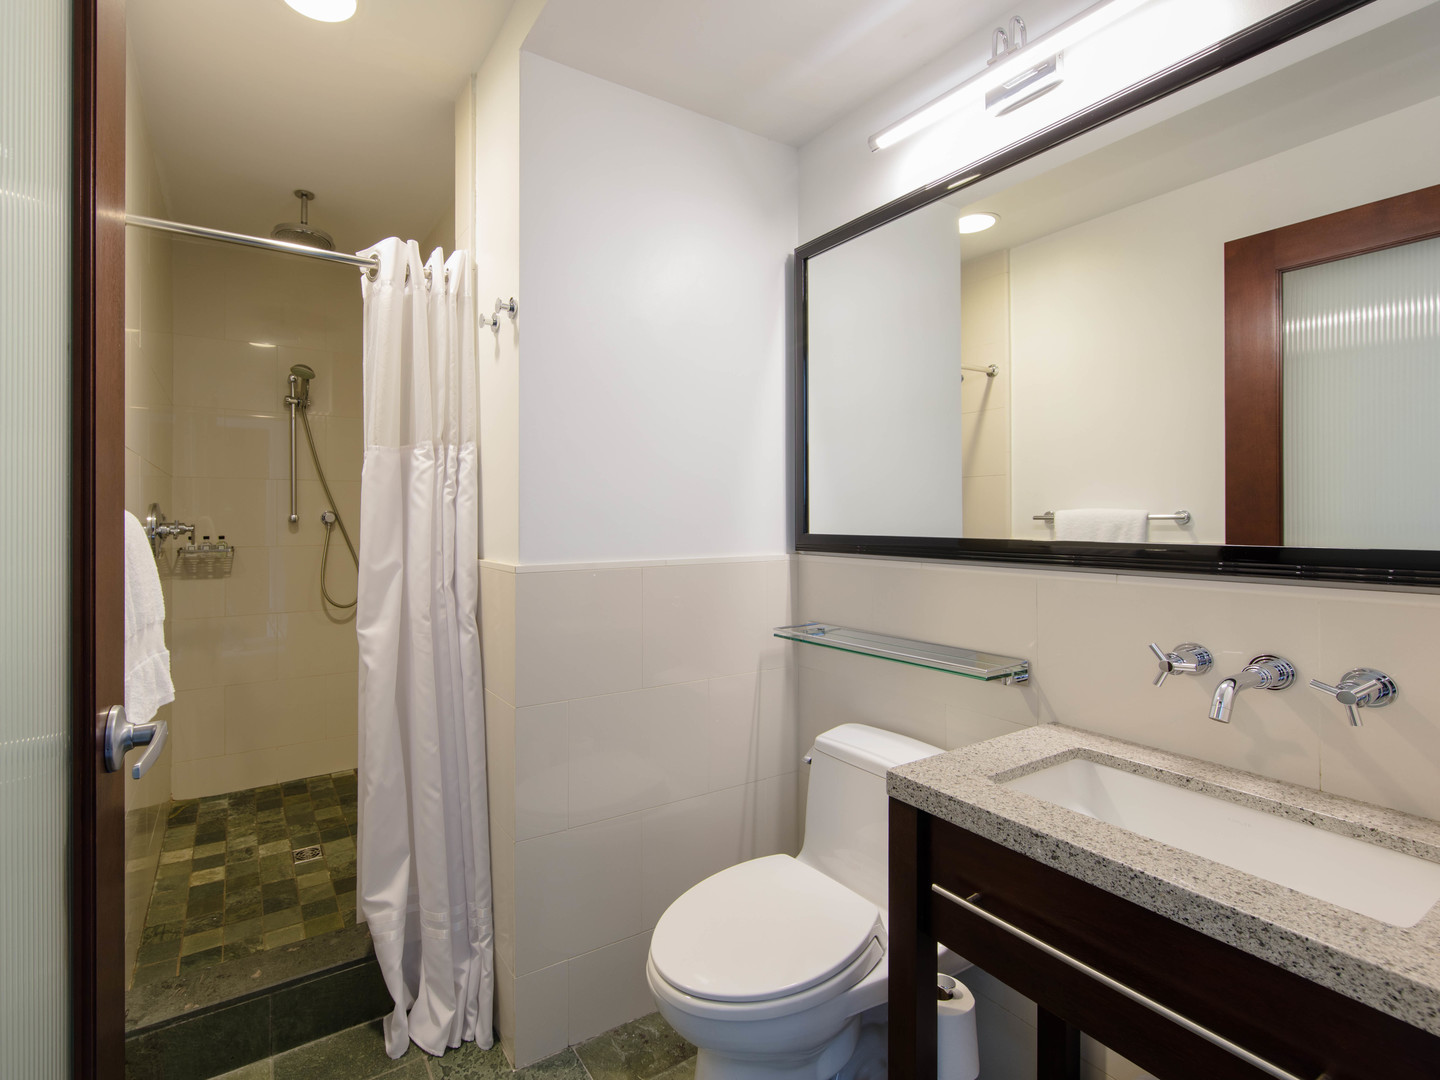 Marriott Vacation Club Pulse<span class='trademark'>®</span>, New York City Deluxe King Guest Bathroom. Marriott Vacation Club Pulse<span class='trademark'>®</span>, New York City is located in New York City, New York United States.